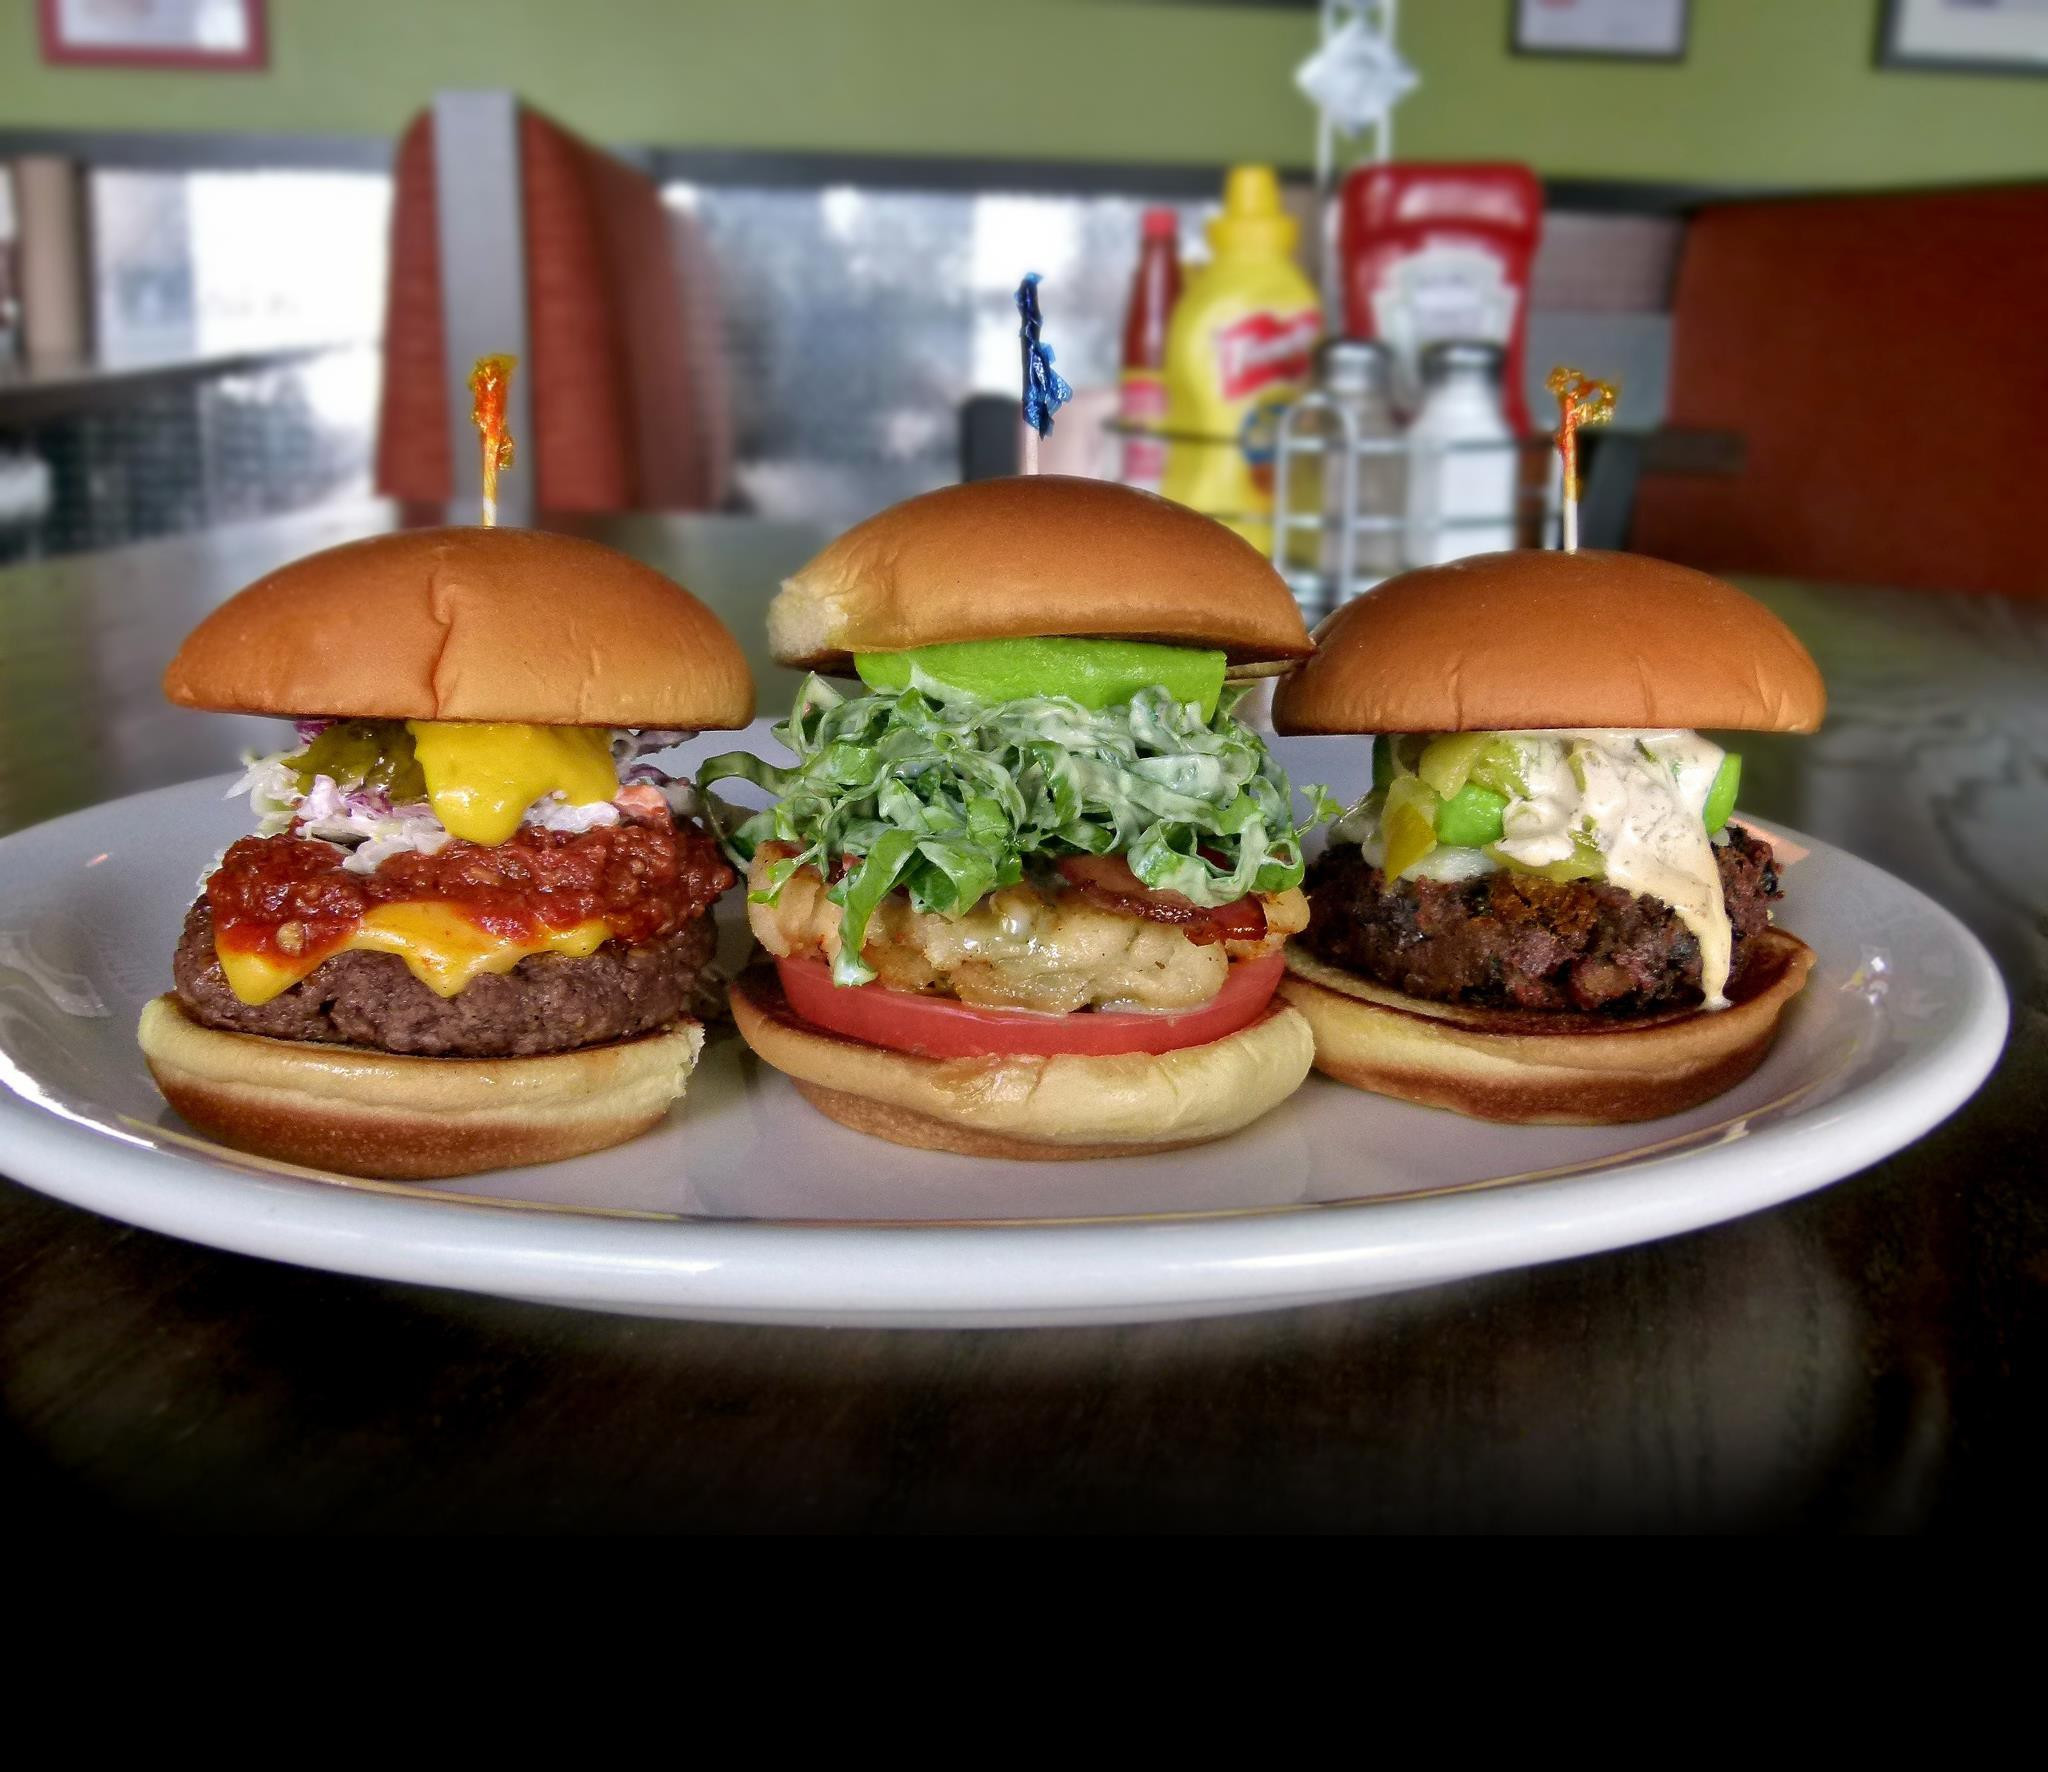 Cuisine Burger Bad Daddy 39s Burger Bar Raleigh Nc Localeats